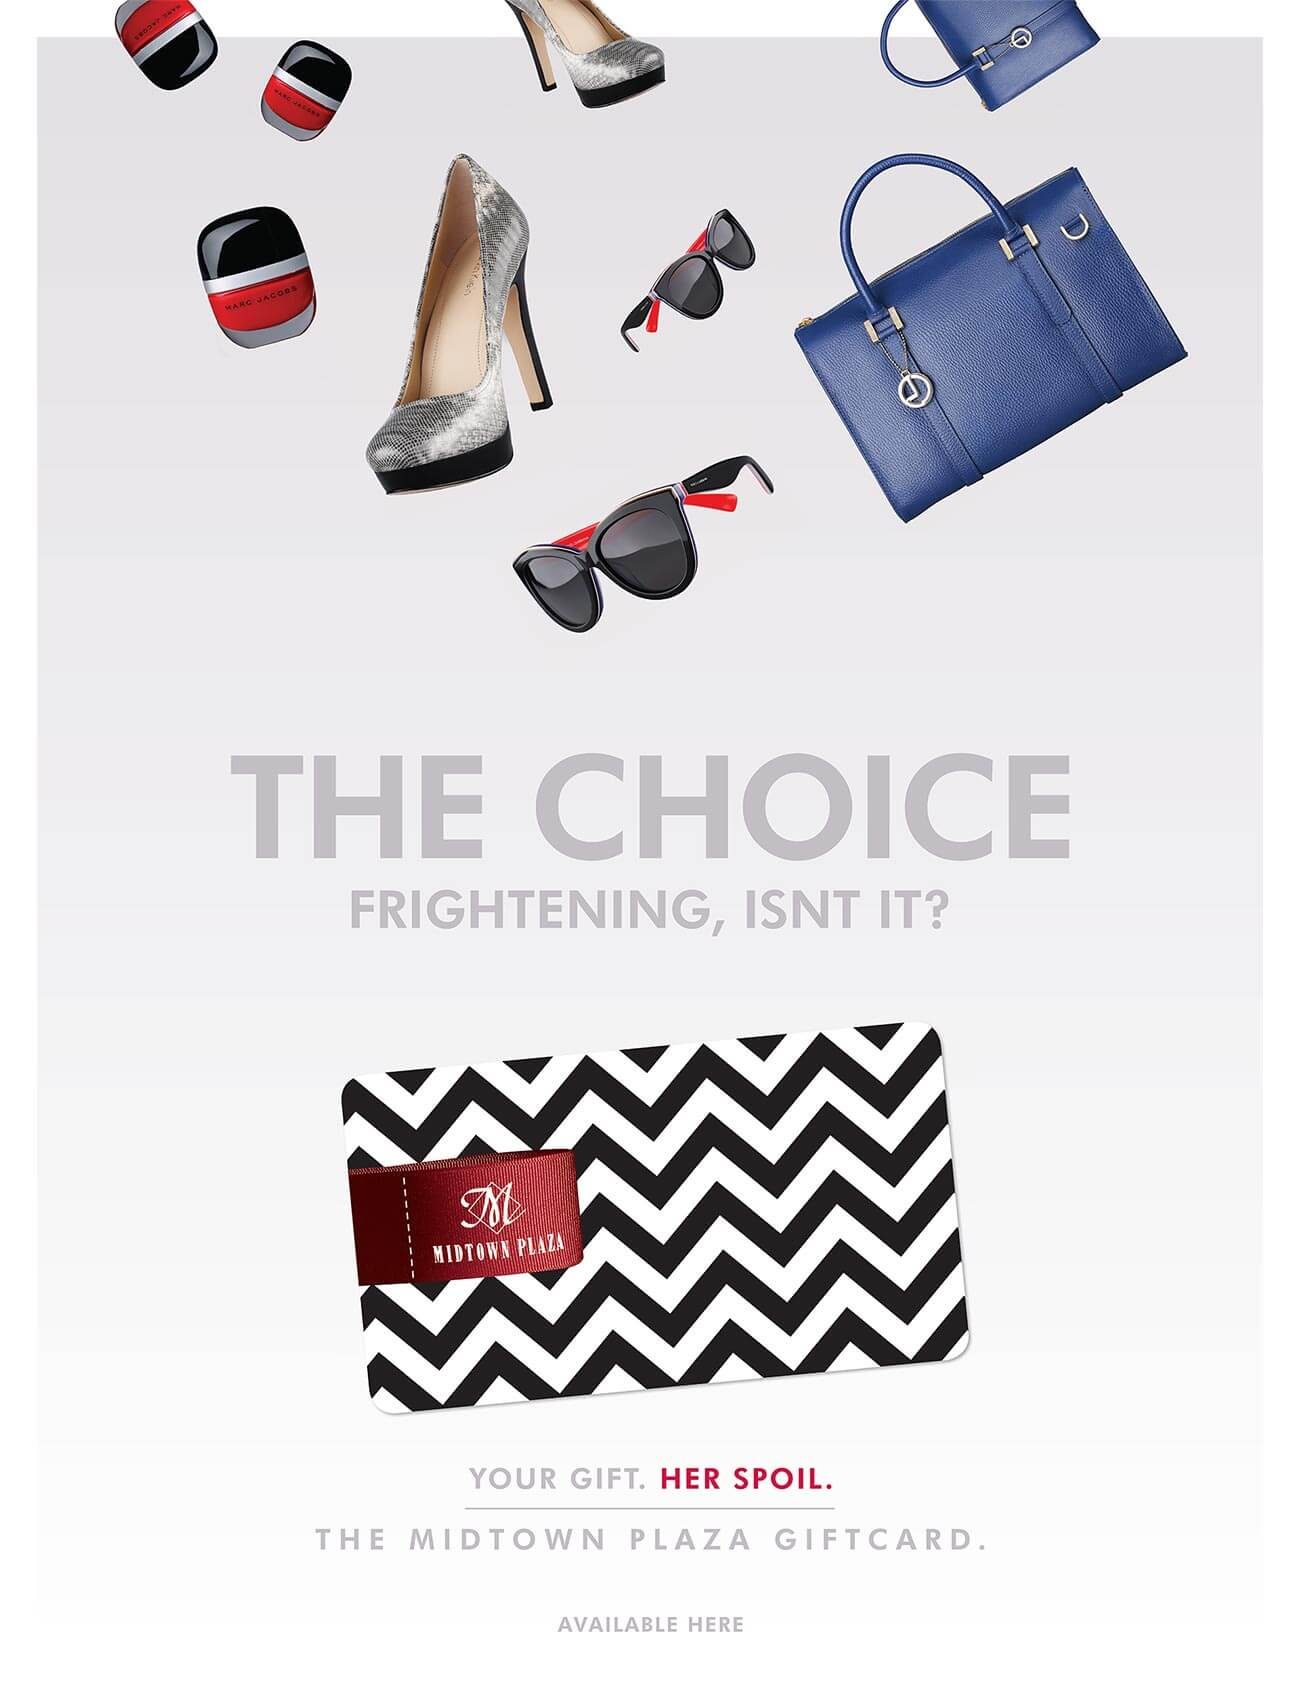 Giftcard Campaign Women's Poster